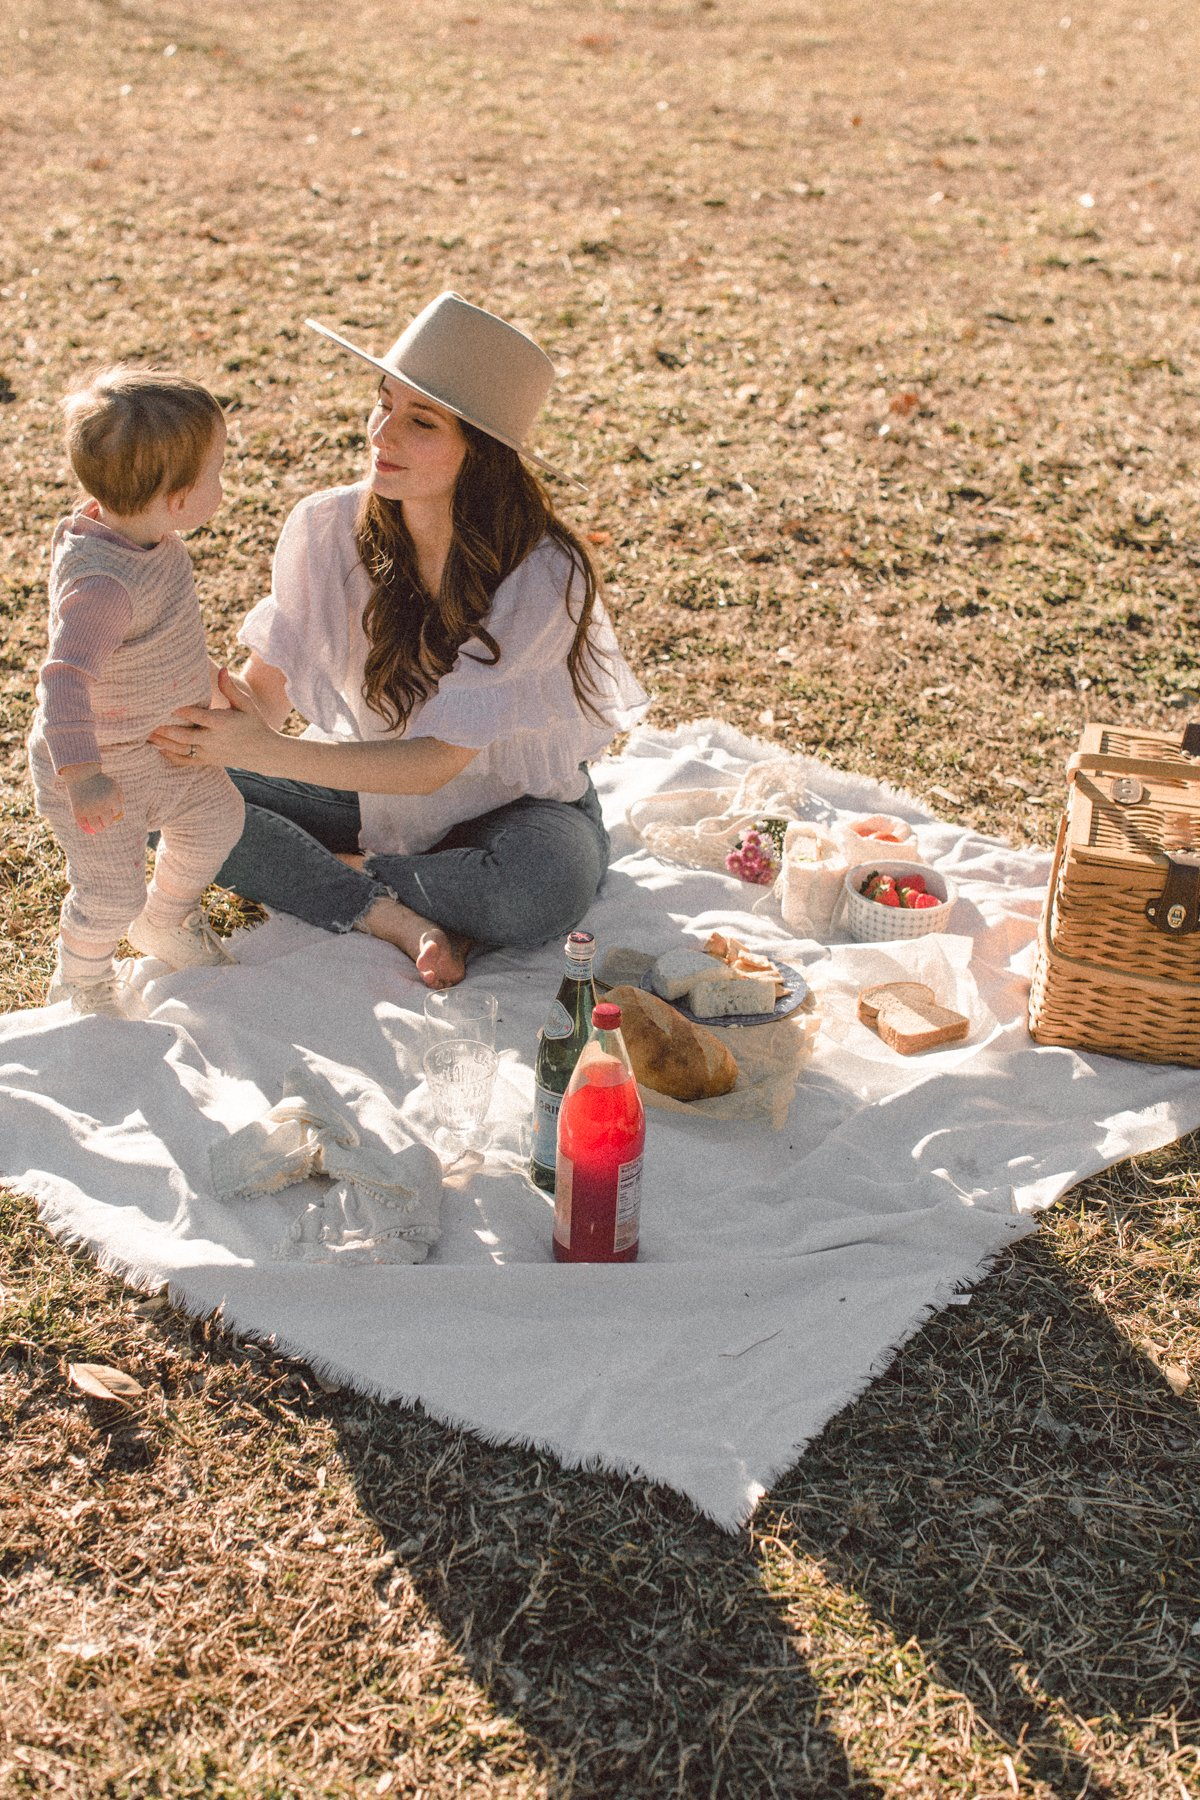 picnic outfit ideas